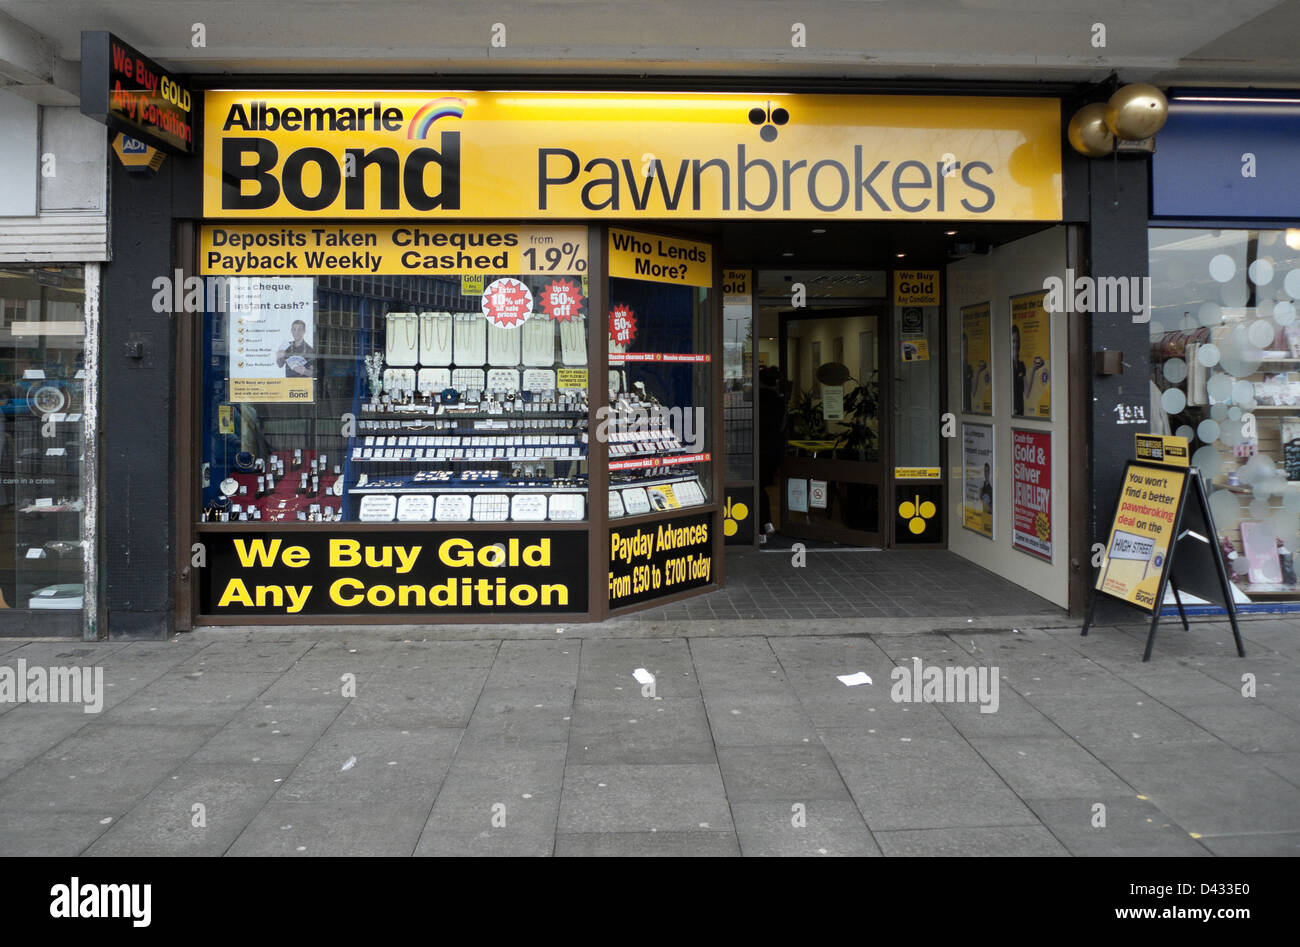 Albermarle Bond Pawnbrokers storefront with buying Gold sign Central Cardiff South Wales UK - Stock Image